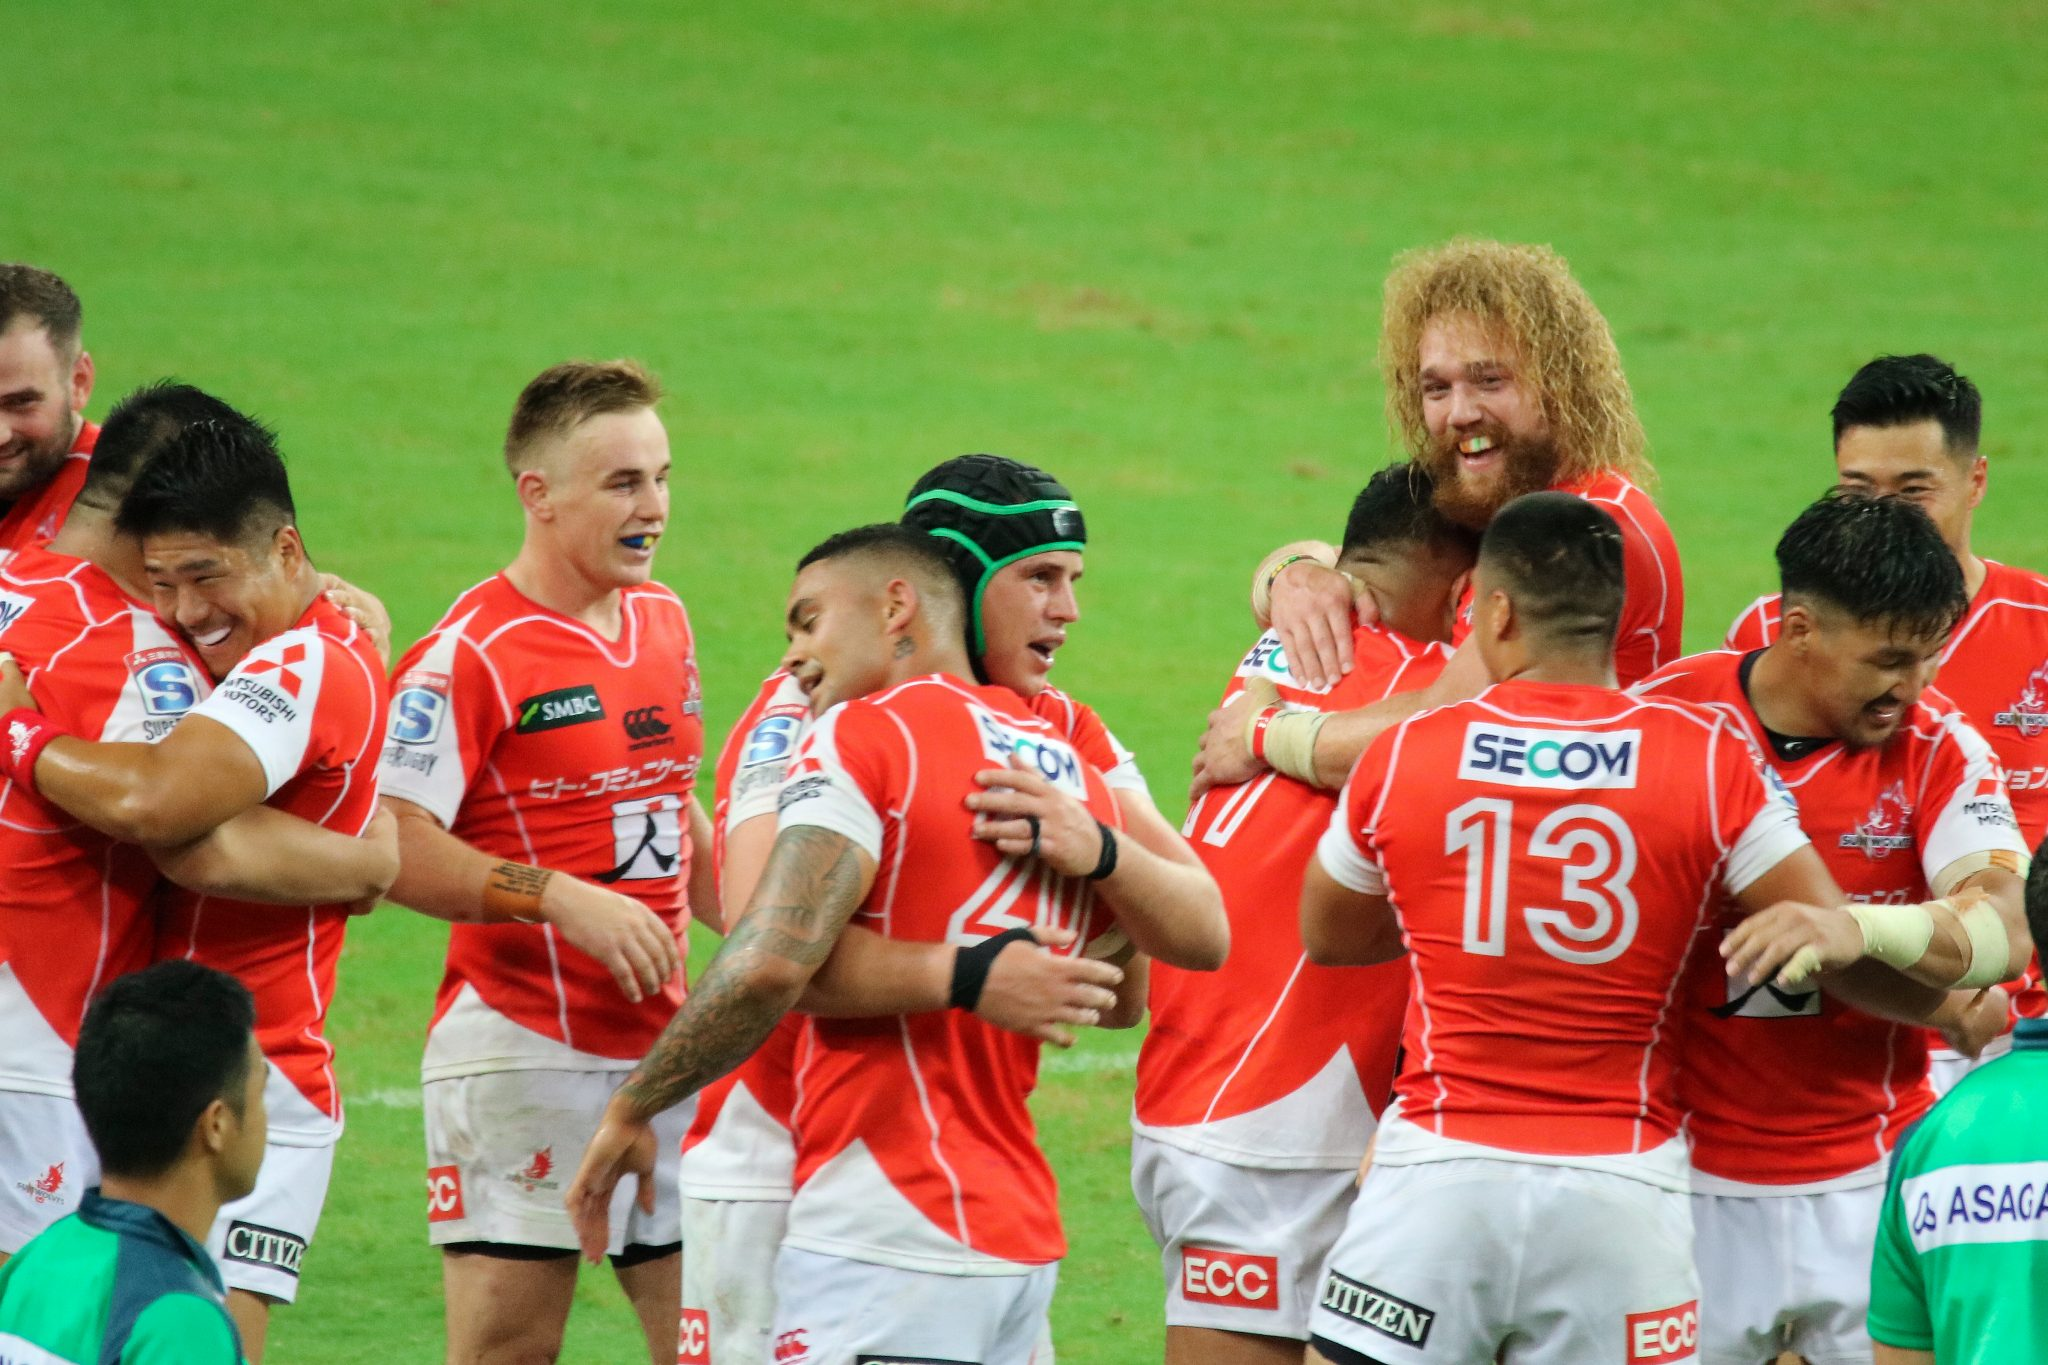 Rugby: Sunwolves vs Bulls - MP66